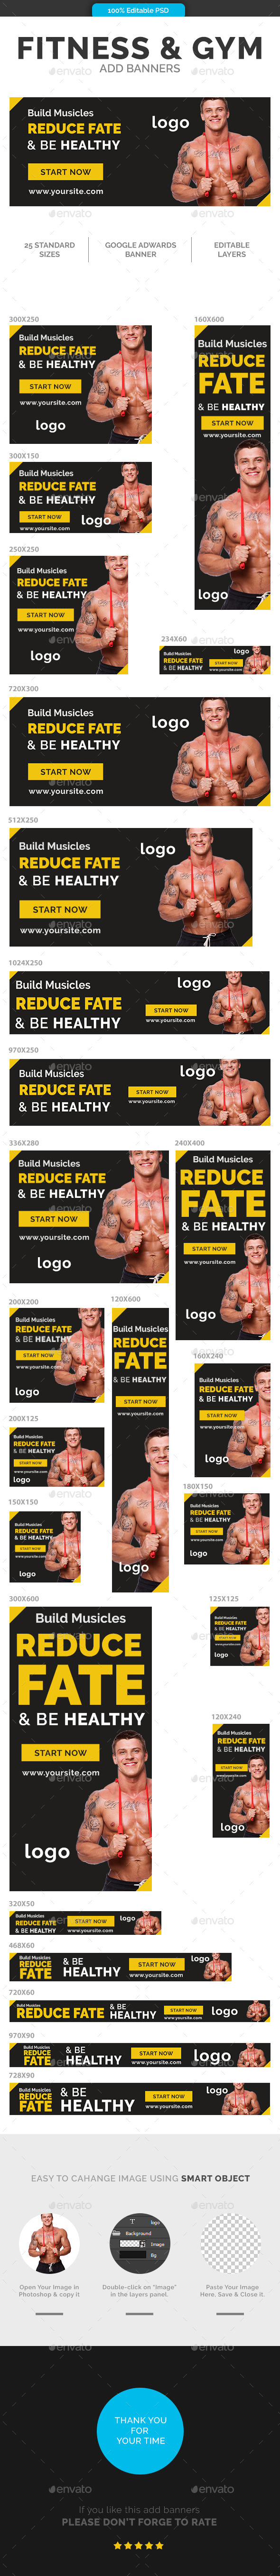 GraphicRiver Fitness & Gym Add Banners 10035542